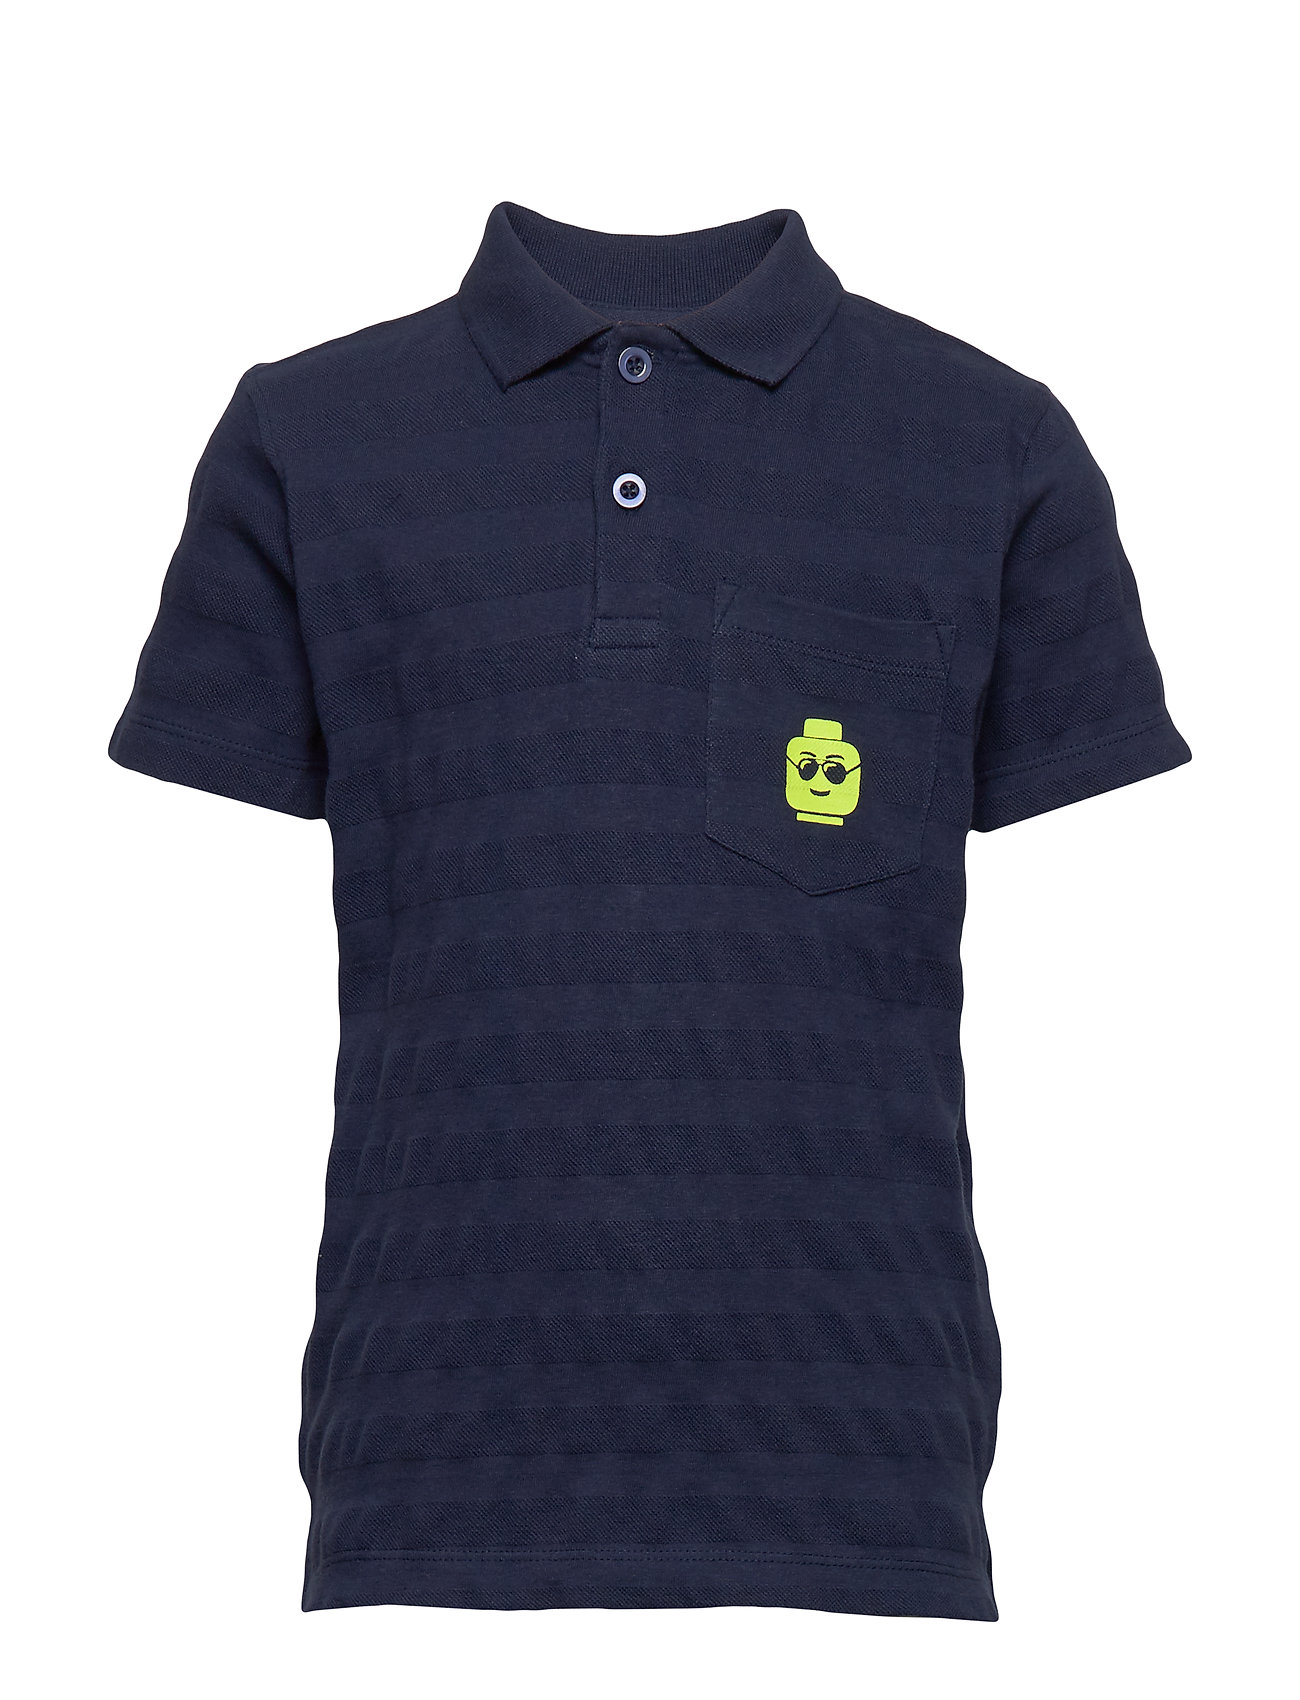 Lego wear LWTOBIAS 312 - S/S POLO - DARK NAVY